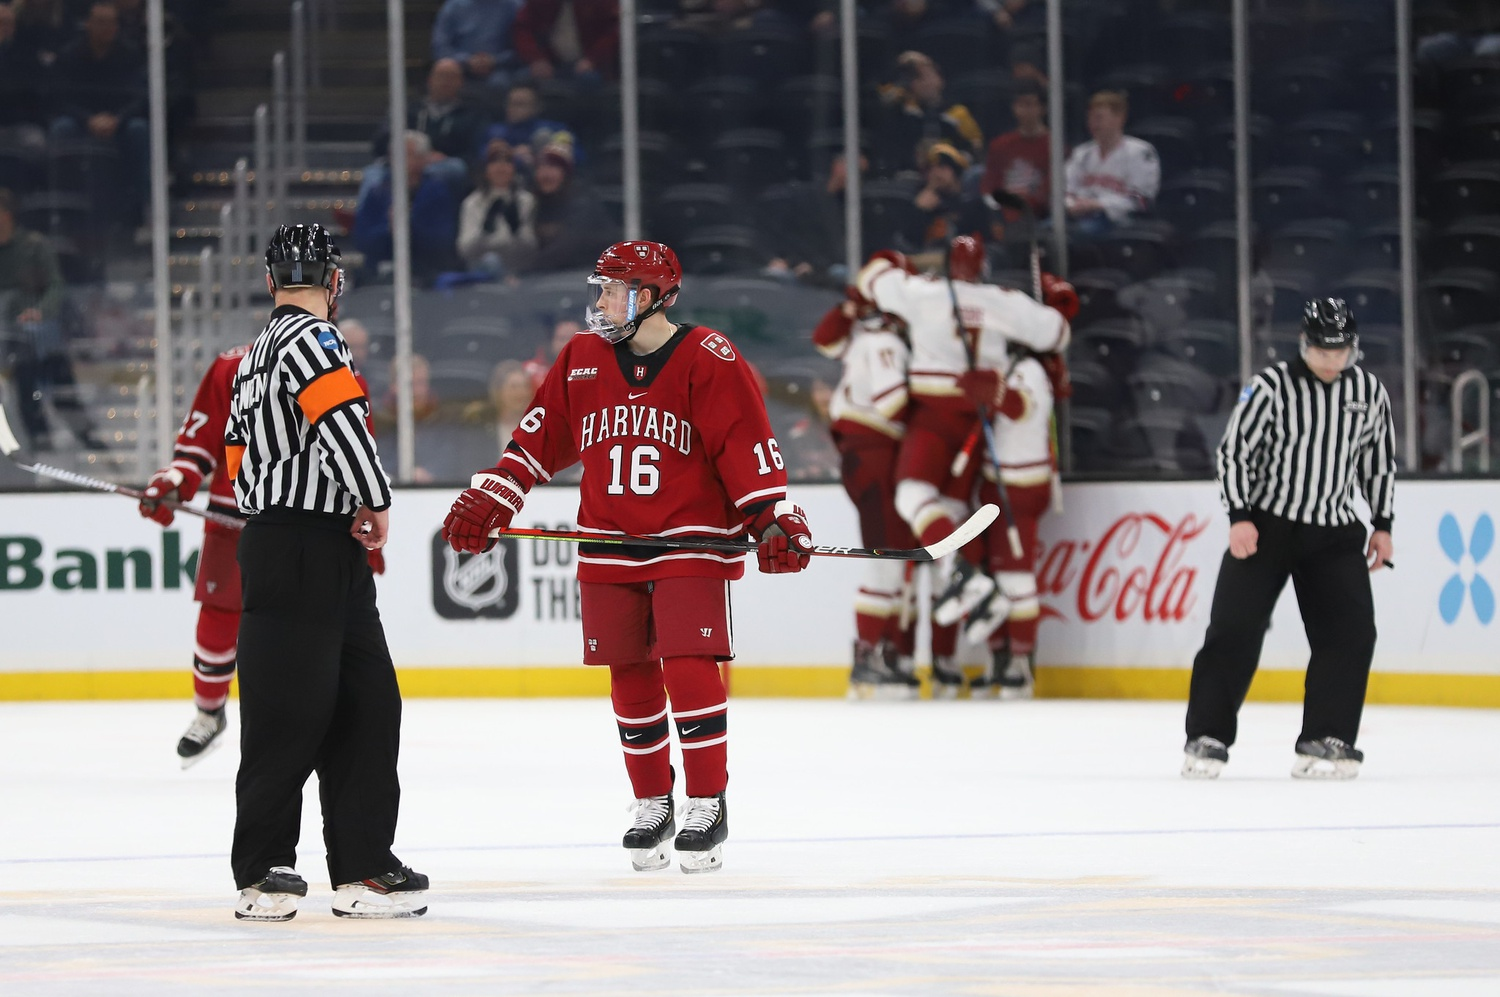 For the first time since 2016, the Crimson placed fourth in the Beanpot Tournament, an annual highlight of the schedule.